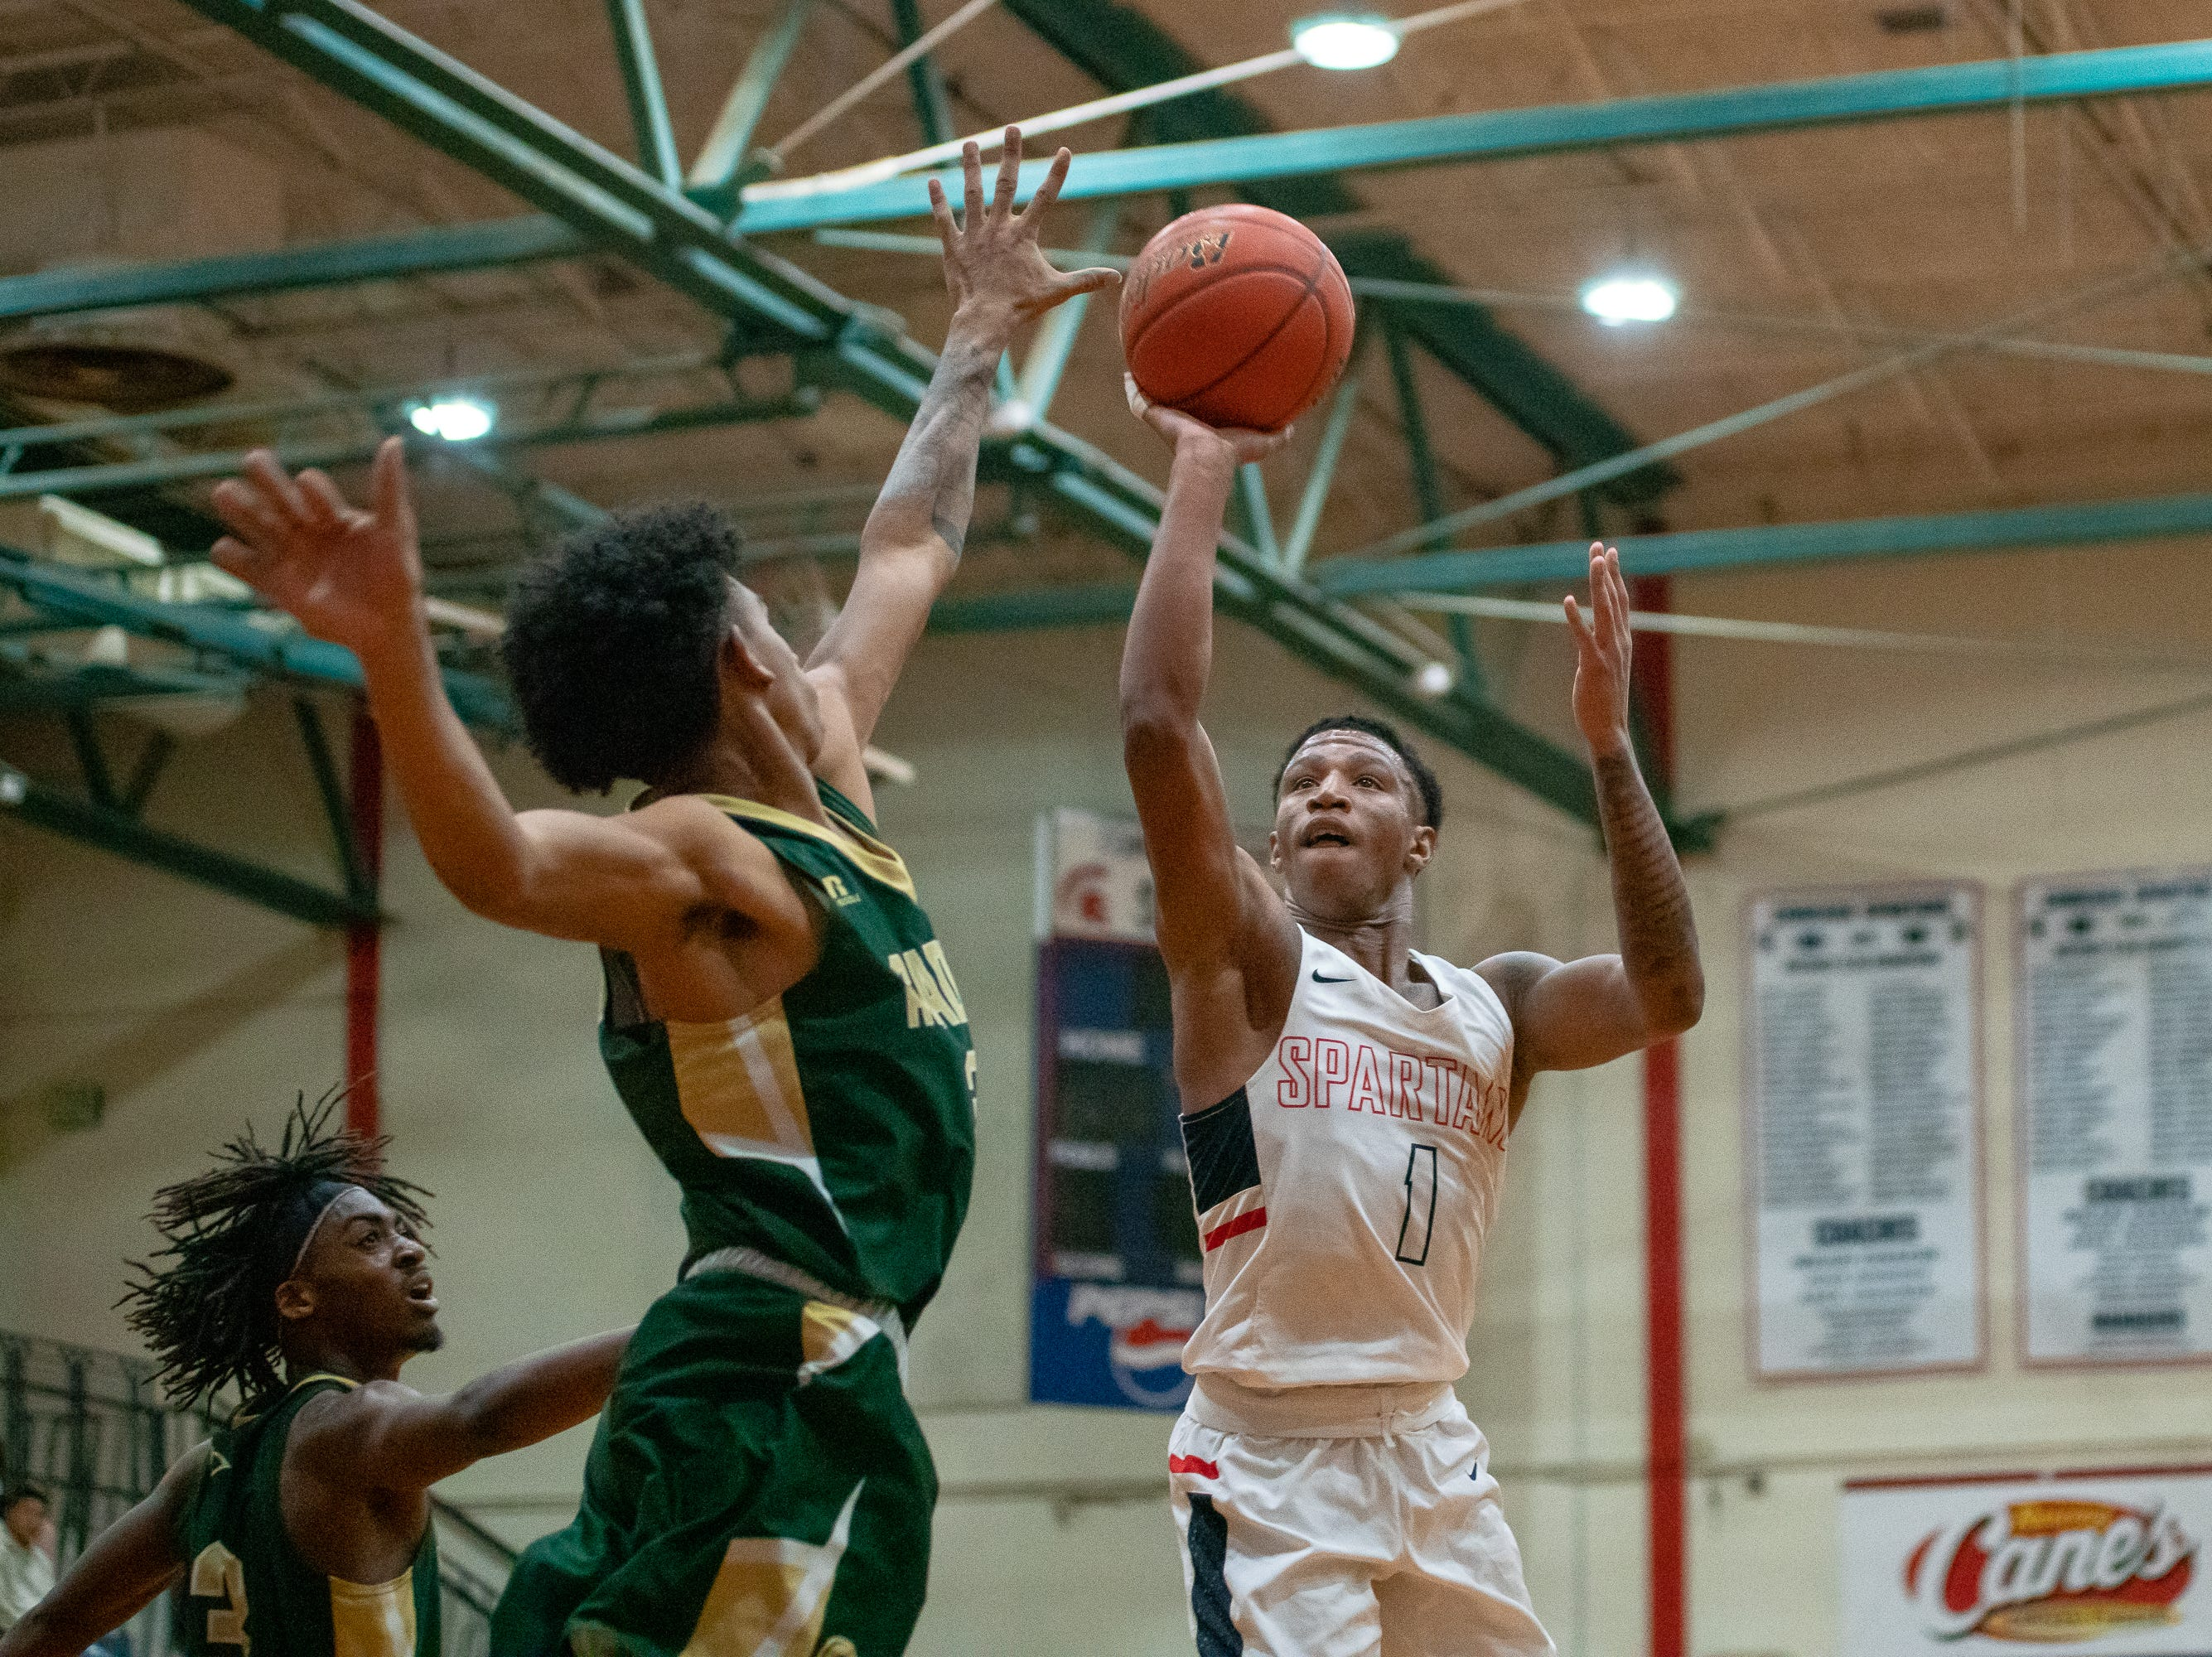 Comeaux High's Christian Archangel (1) goes up to the goal to score as the Comeaux High Spartans take on the Acadiana High Wreckin' Rams at Comeaux High School on Jan. 25, 2019.